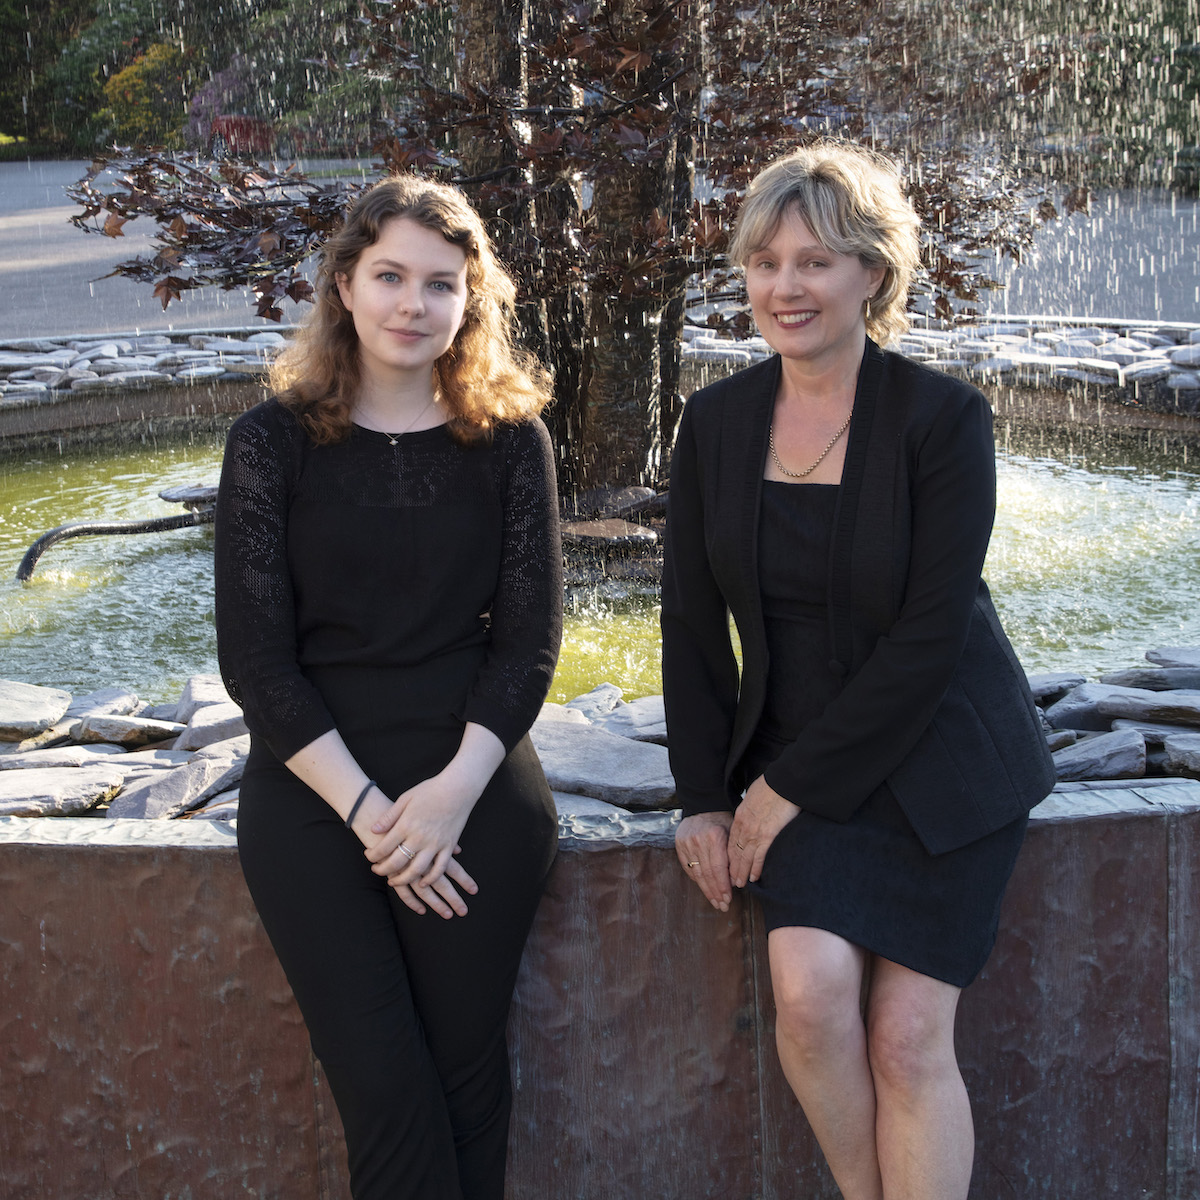 Laura Robertson and Tracey Carr from the Bernardi Music Group at the Leonardslee Gardens Live Music Night - article on Title Sussex - www.titlesussex.co.uk